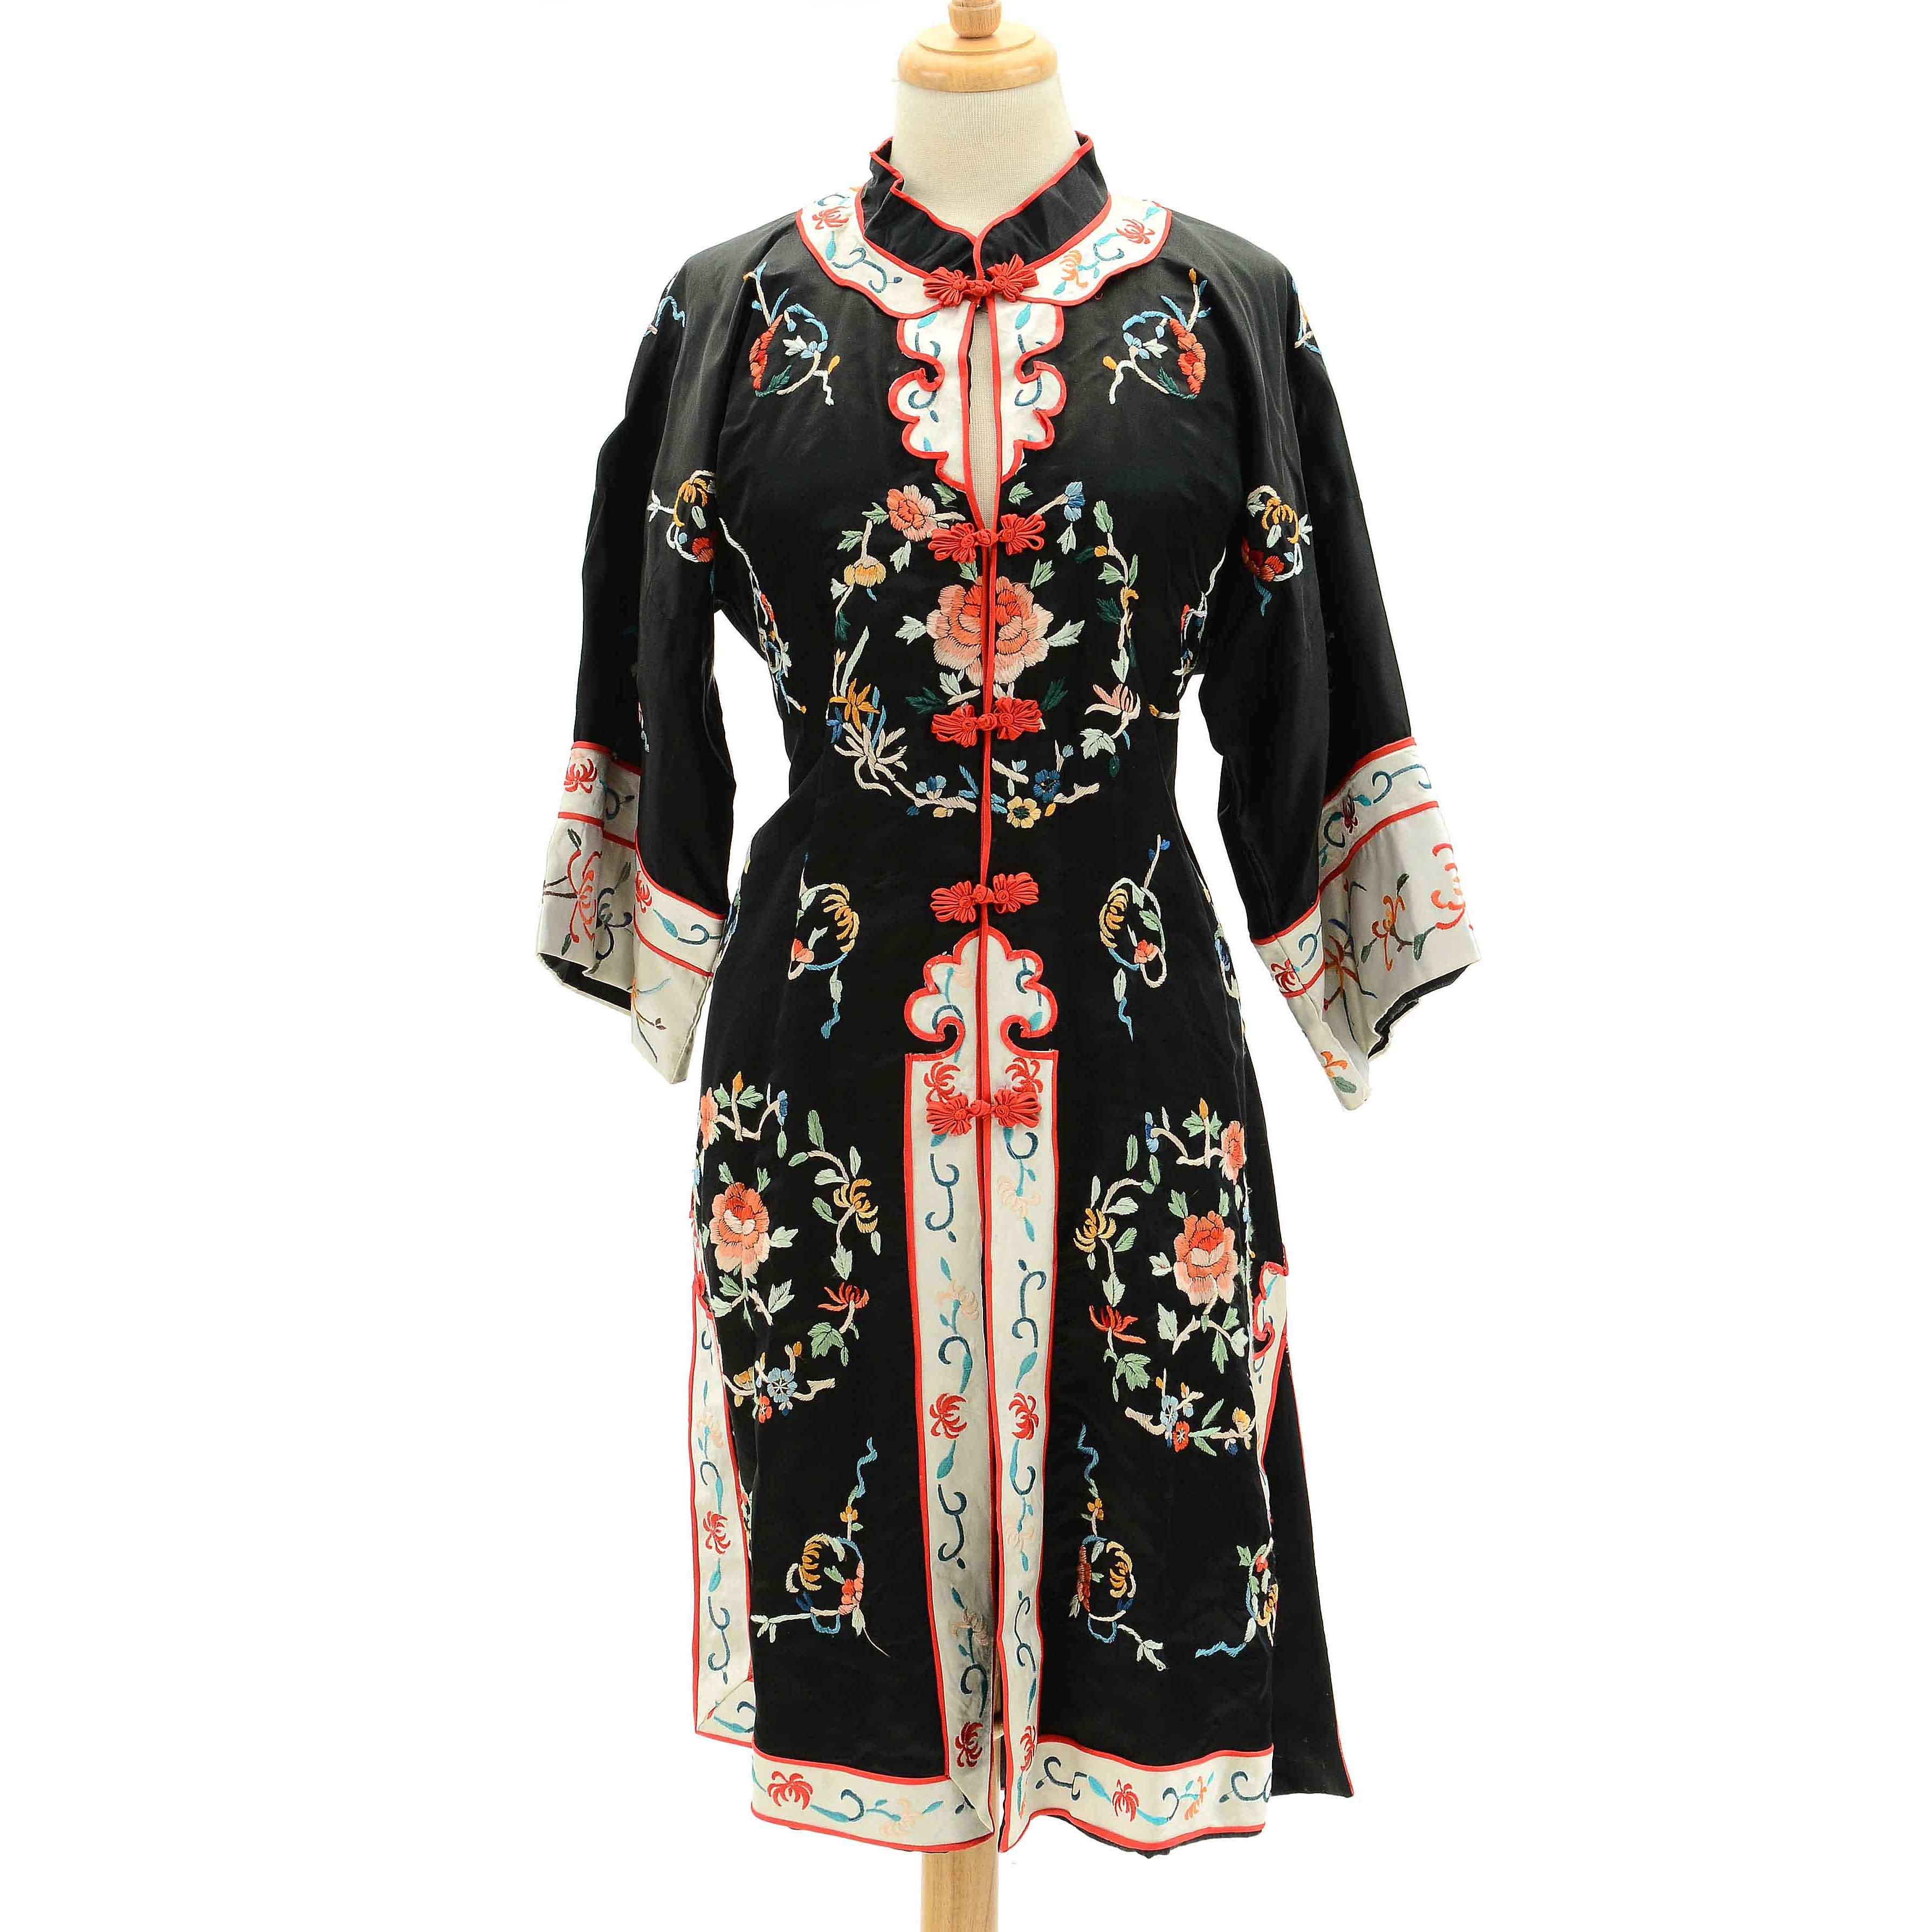 Women's Vintage Chinese Embroidered Silk Robe